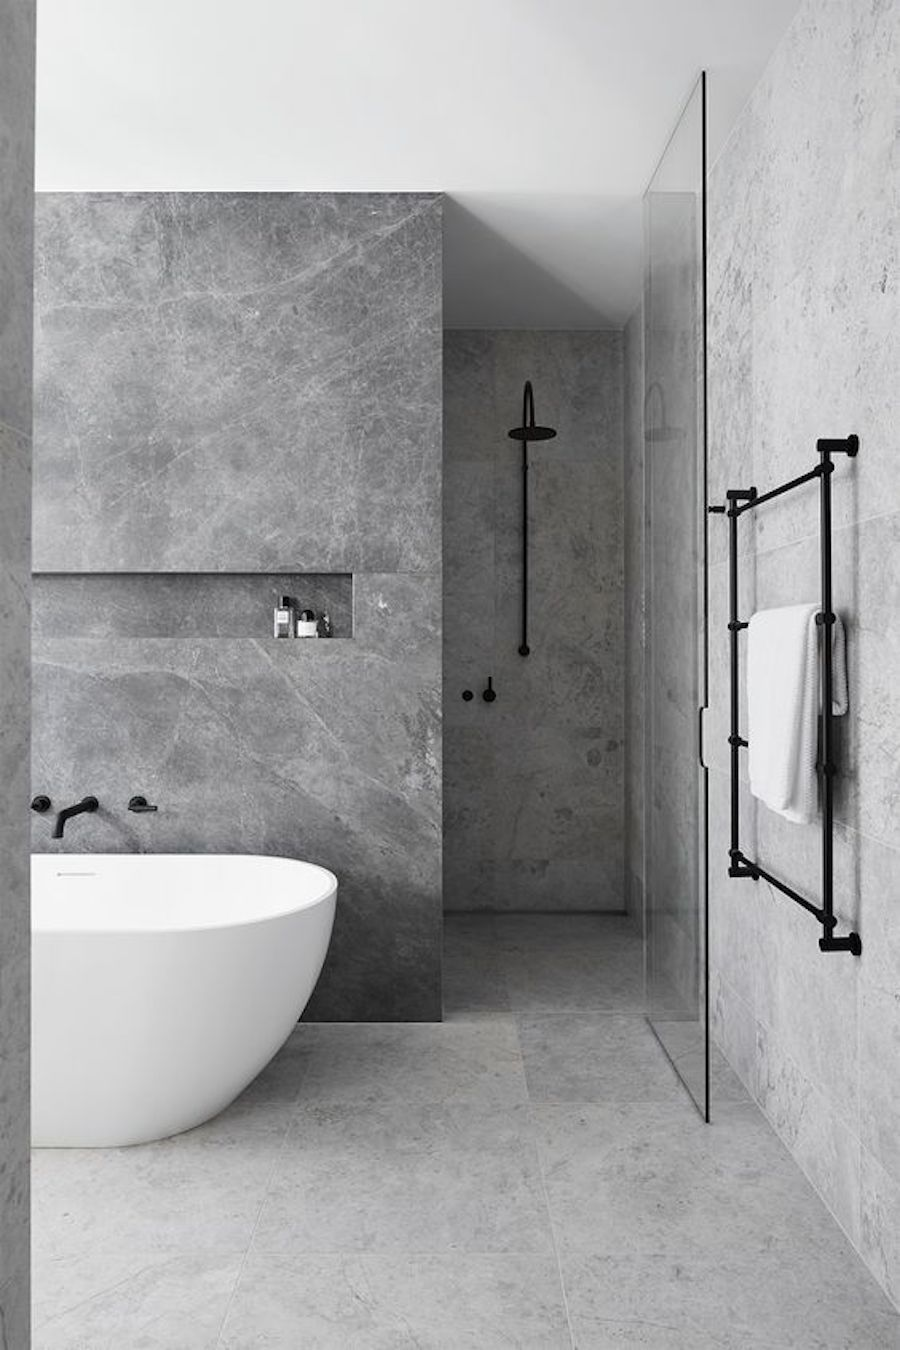 Are you going to reform your bathroom? Take advantage of the